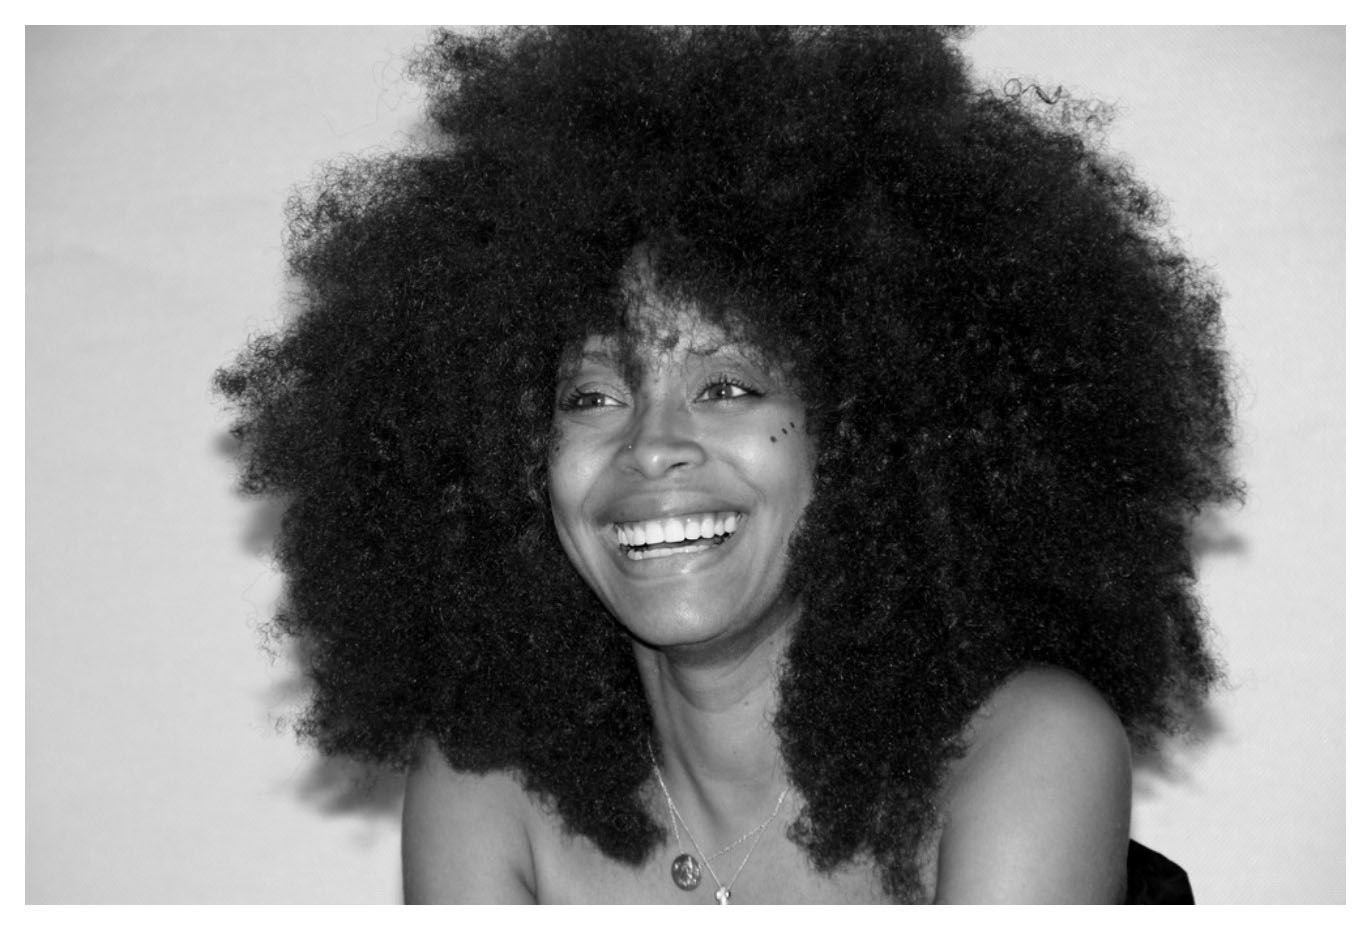 Erykah badu  Google Search  Erykah Badu  Pinterest  Wordpress